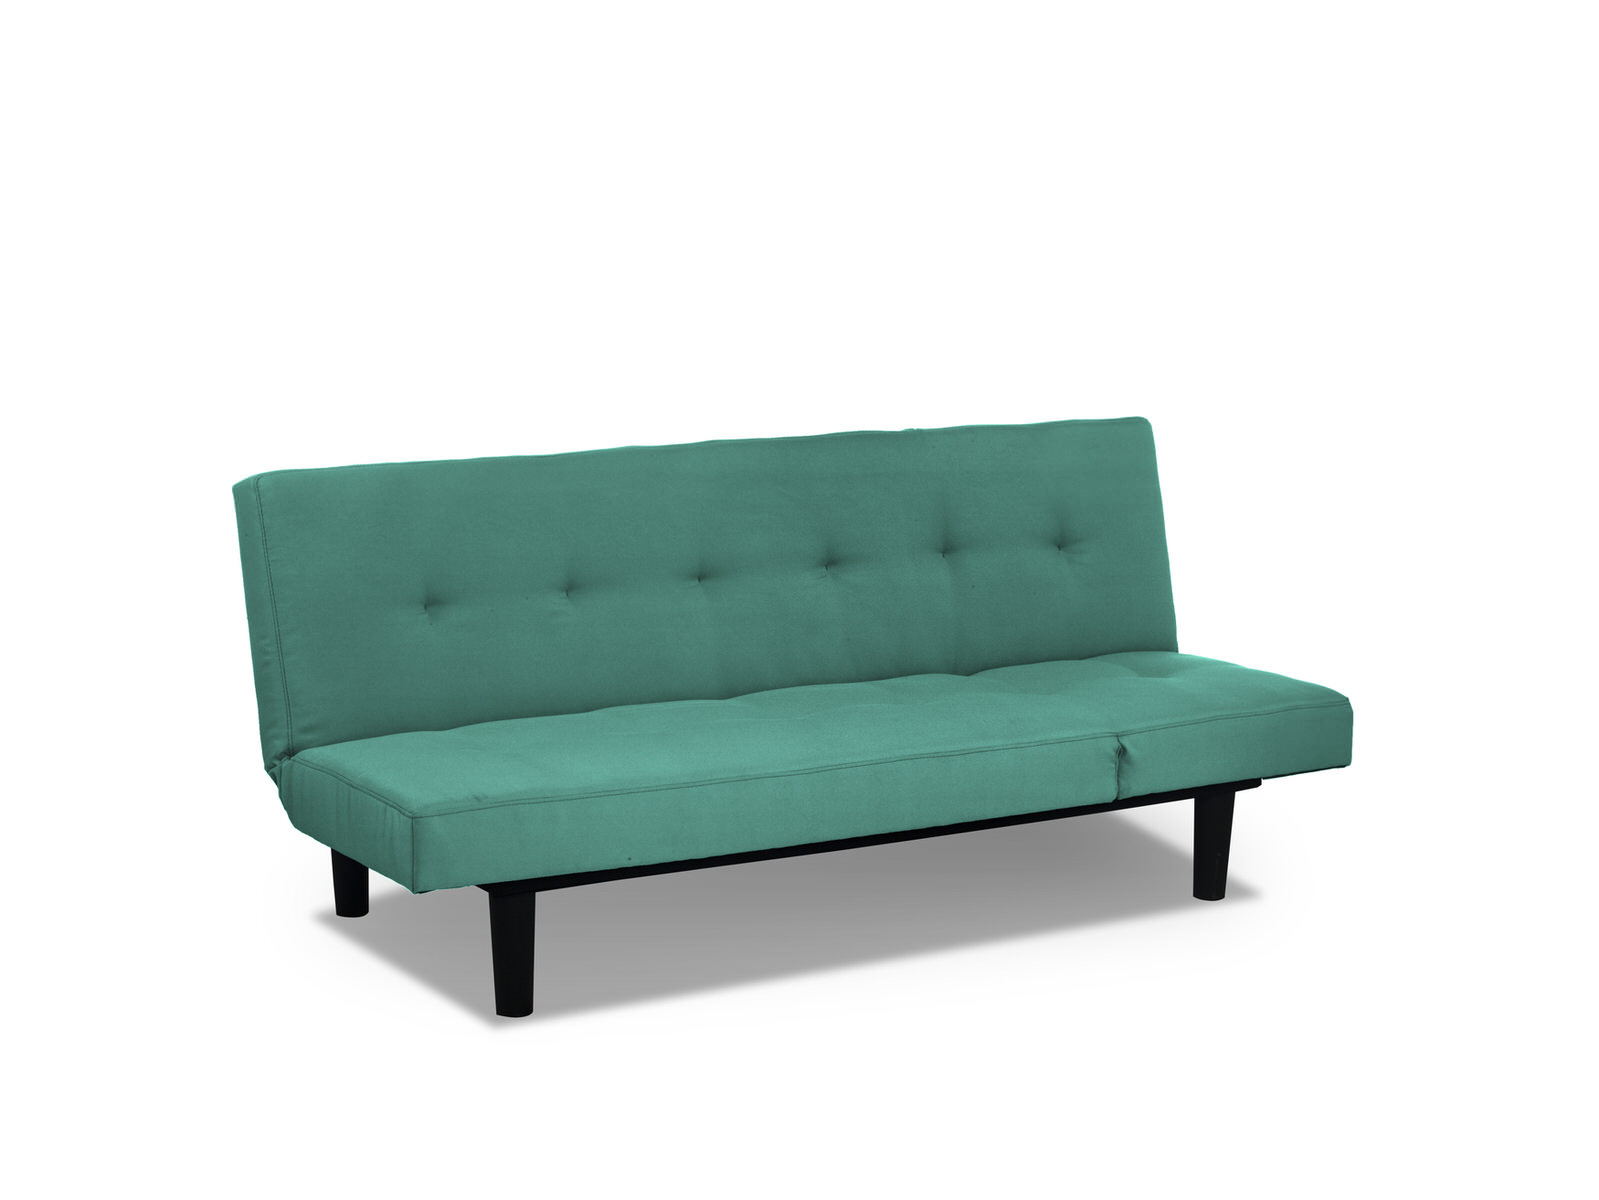 Mini Lounger Convertible Sofa Bed Teal By Serta Lifestyle Solutions